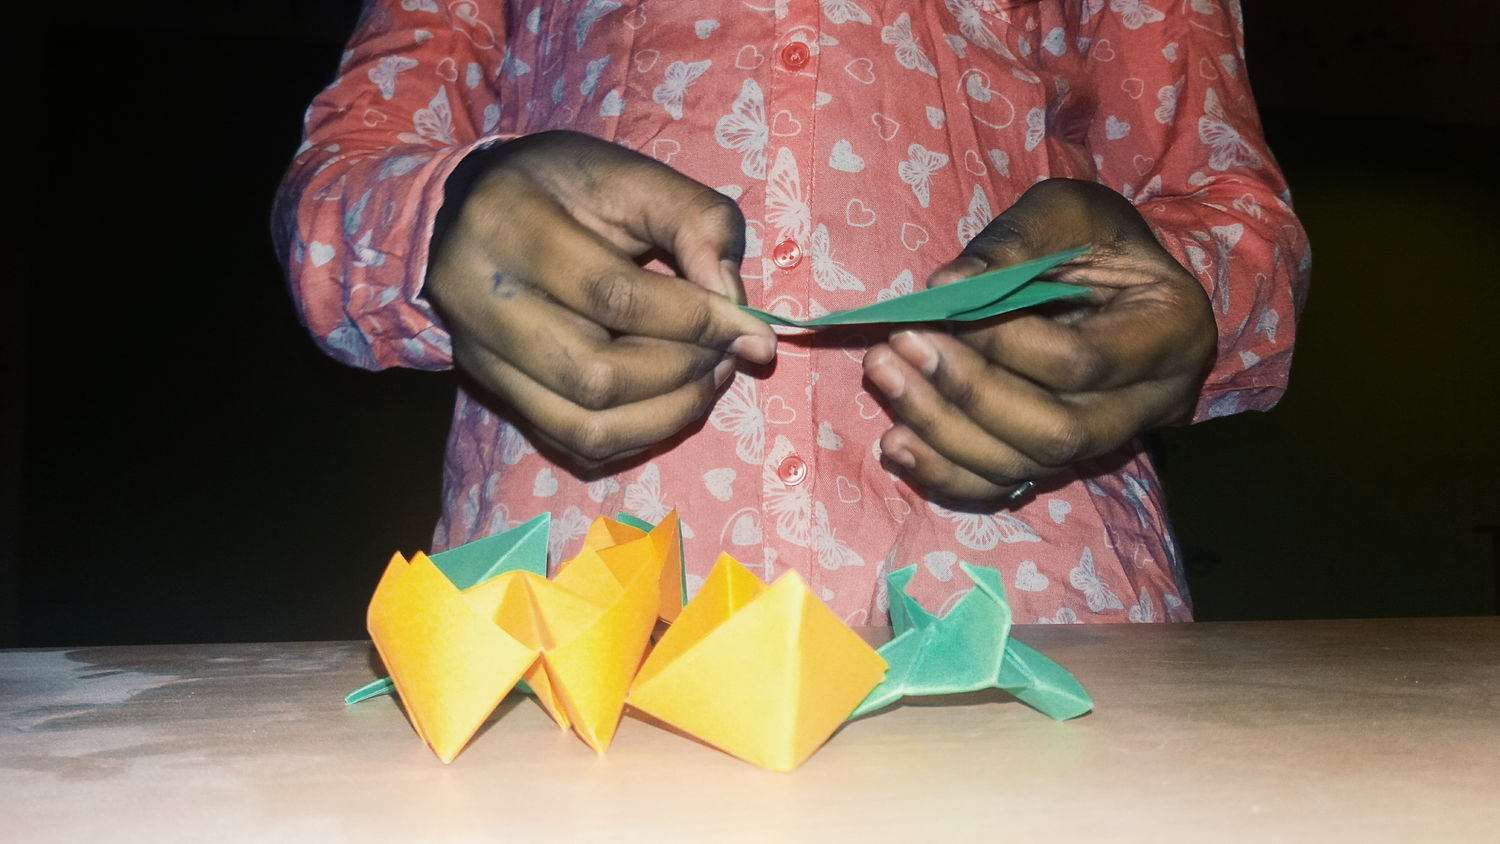 Sister making crafts ... Kids Crafts Papercraft Green Paper Color Paper Paper Folding Ships Child Origami Art And Craft Yellow Paper Paper Folding